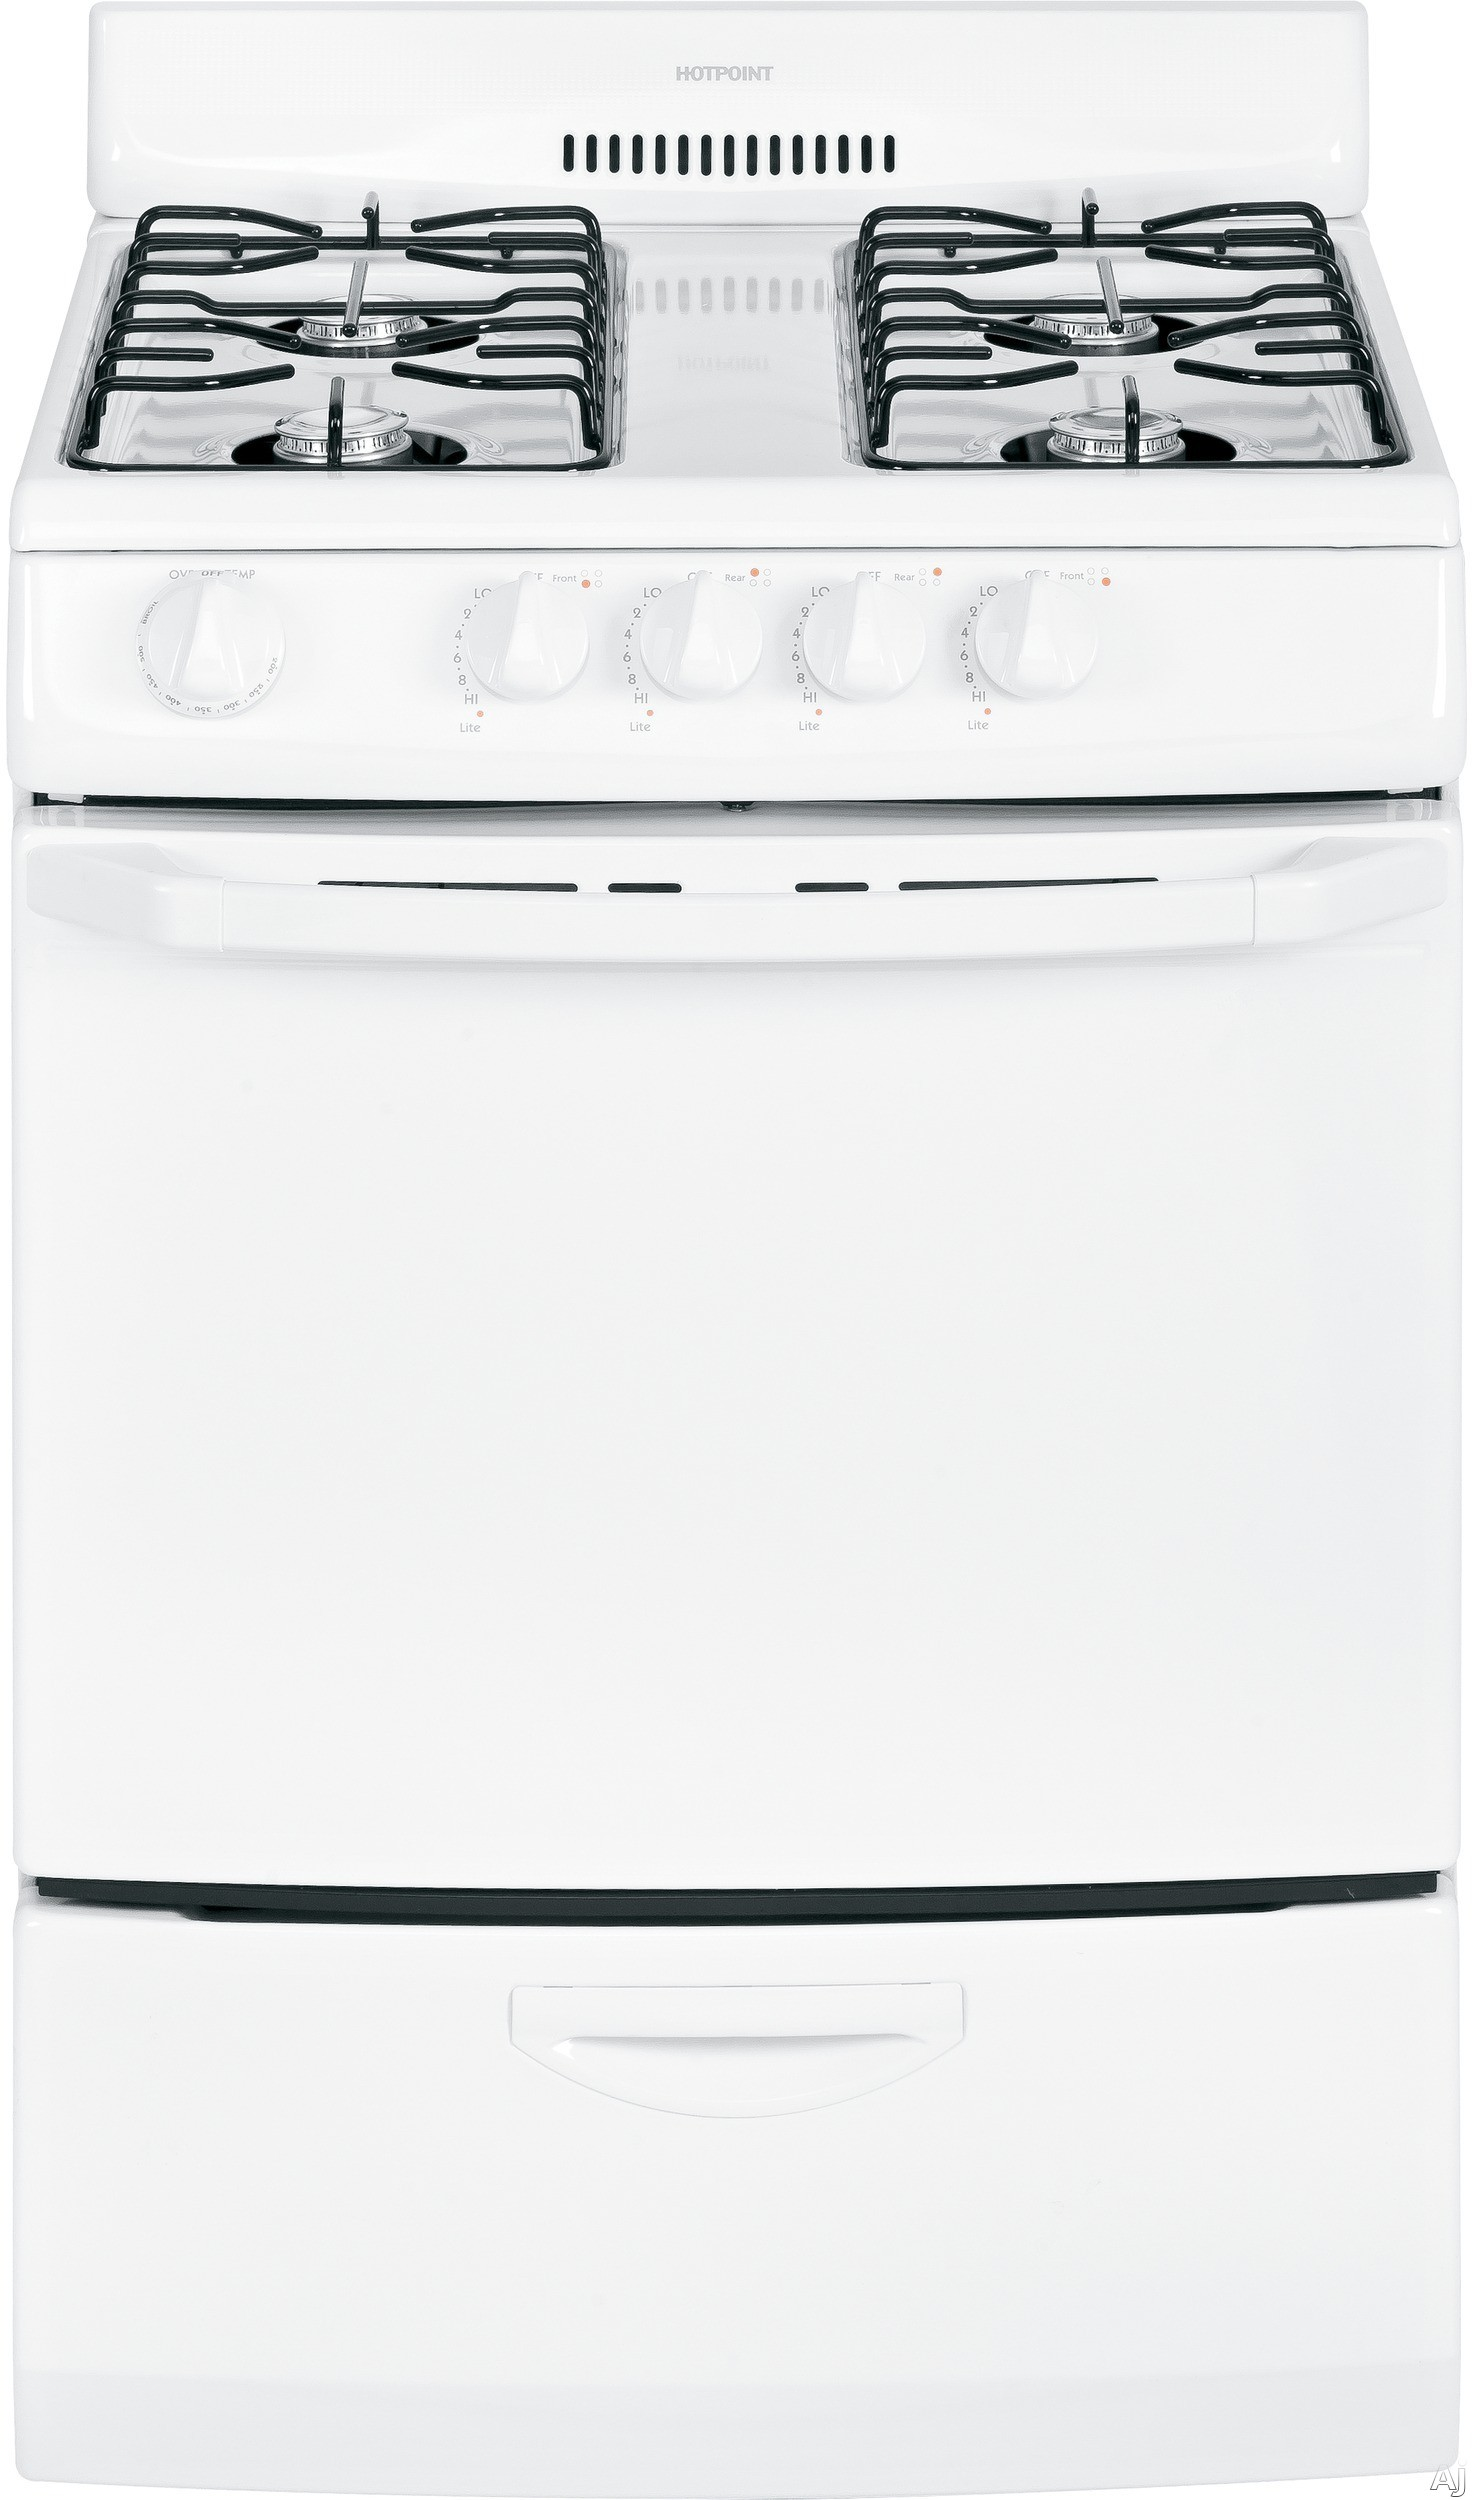 """Hotpoint RGA720EKWH 20"""" Freestanding Gas Range with 4 Open Burners, Electronic Pilotless Ignition, Continuous Grates, 2.4 cu. ft. Manual Clean Oven and Broiler Drawer"""